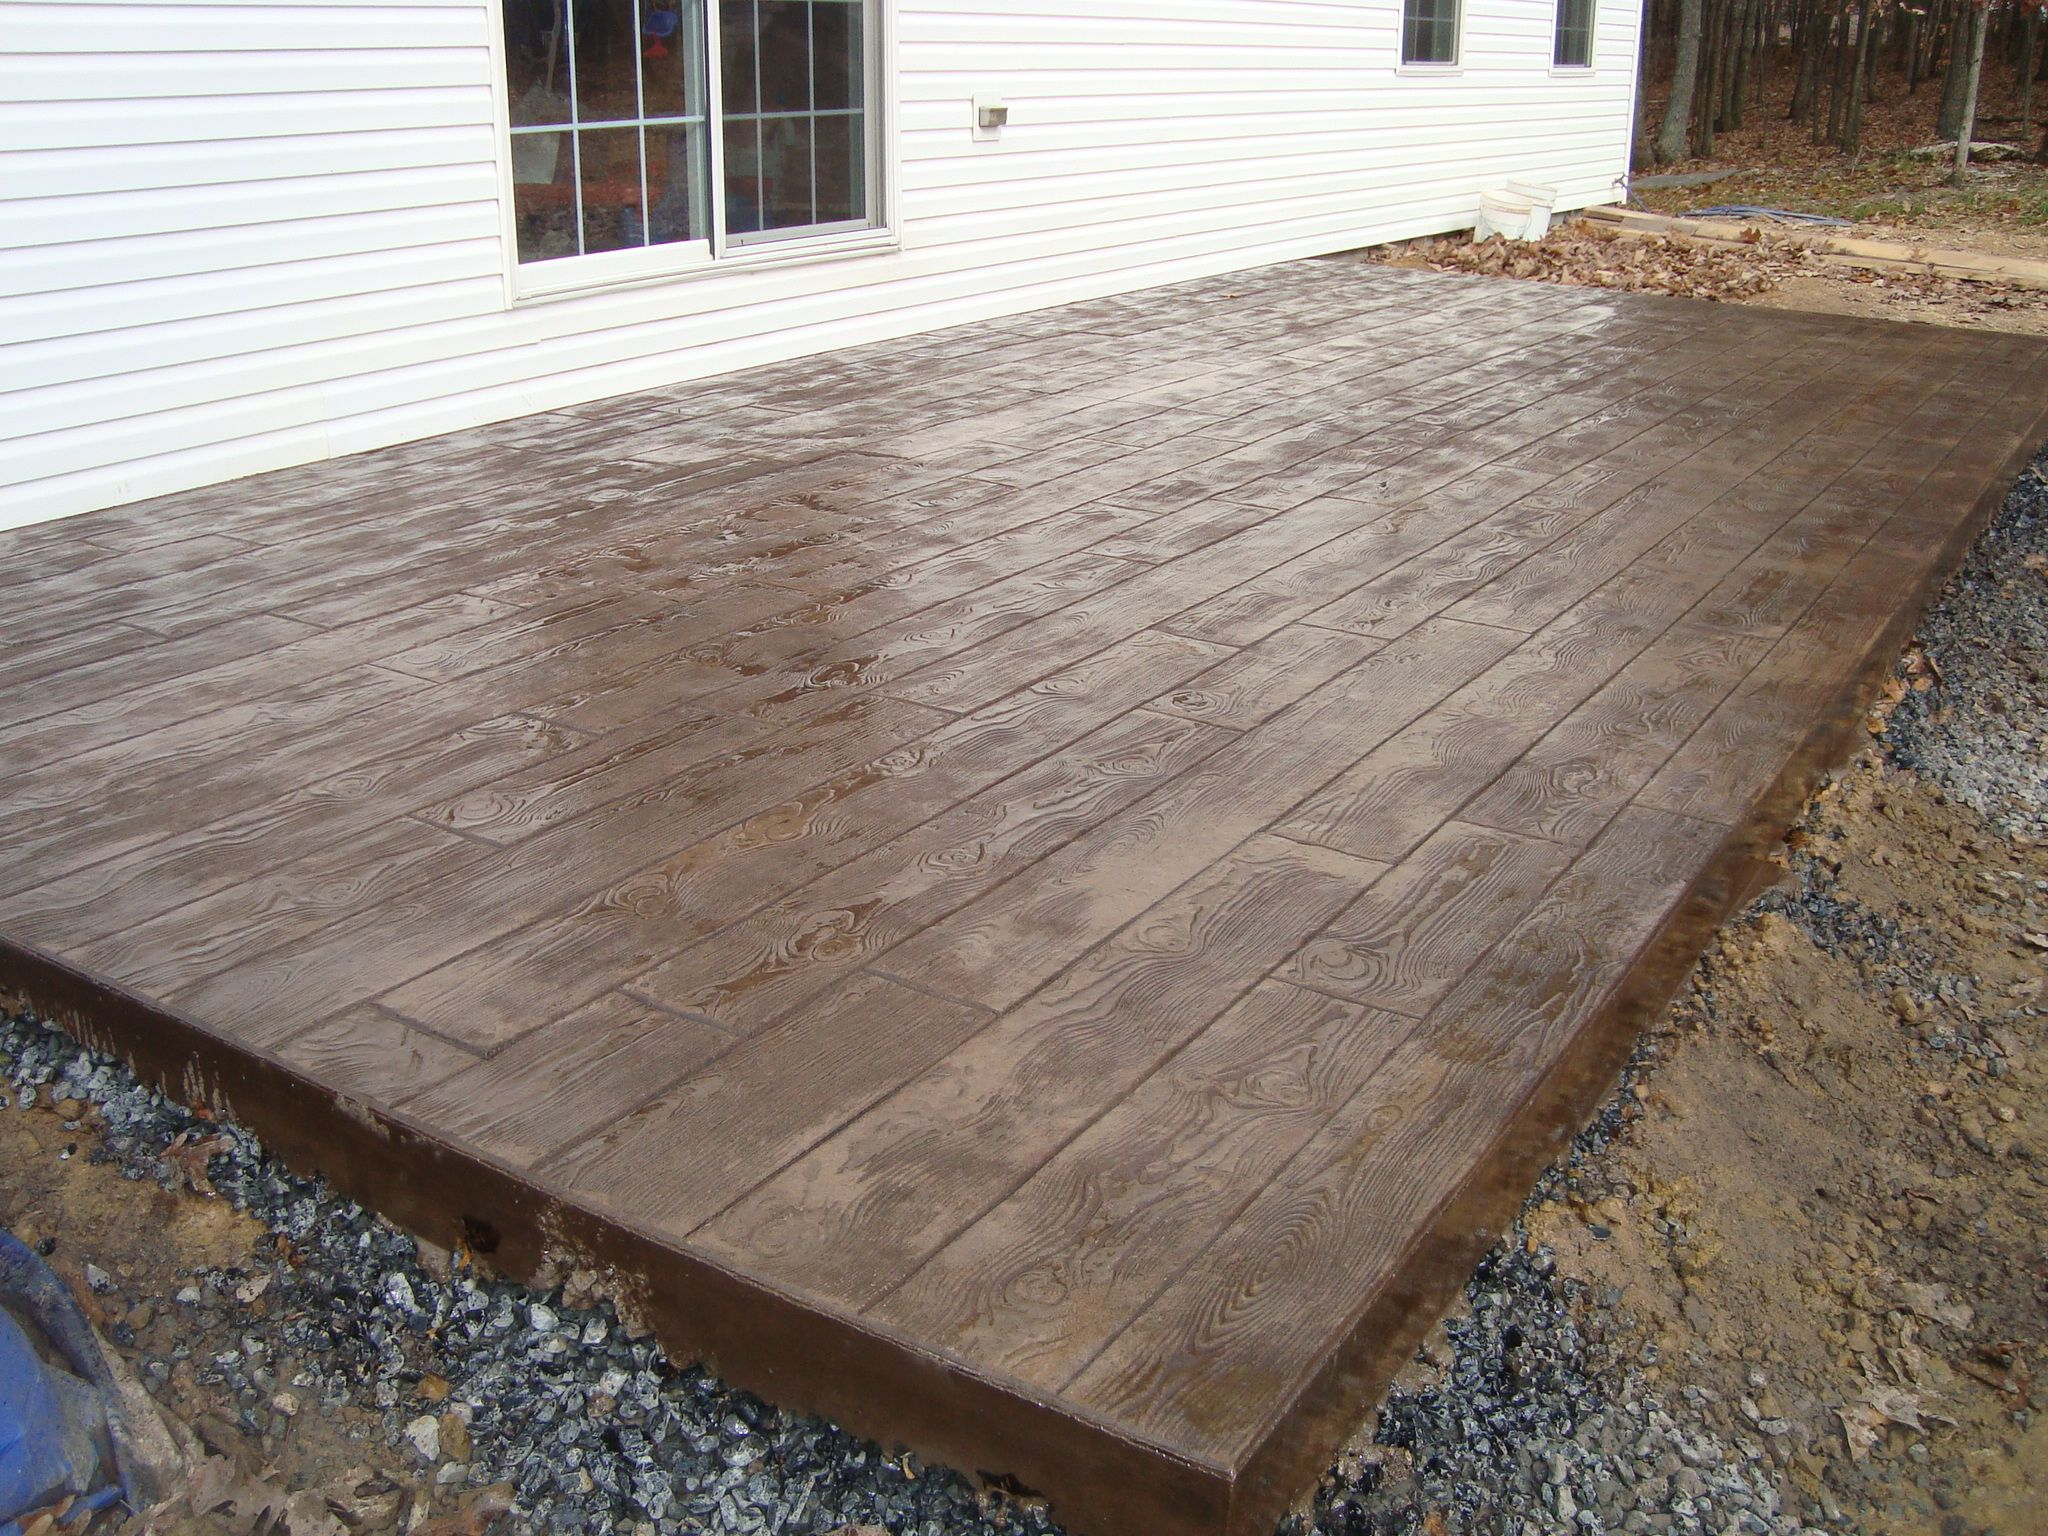 Concrete Stamped Stone Patio